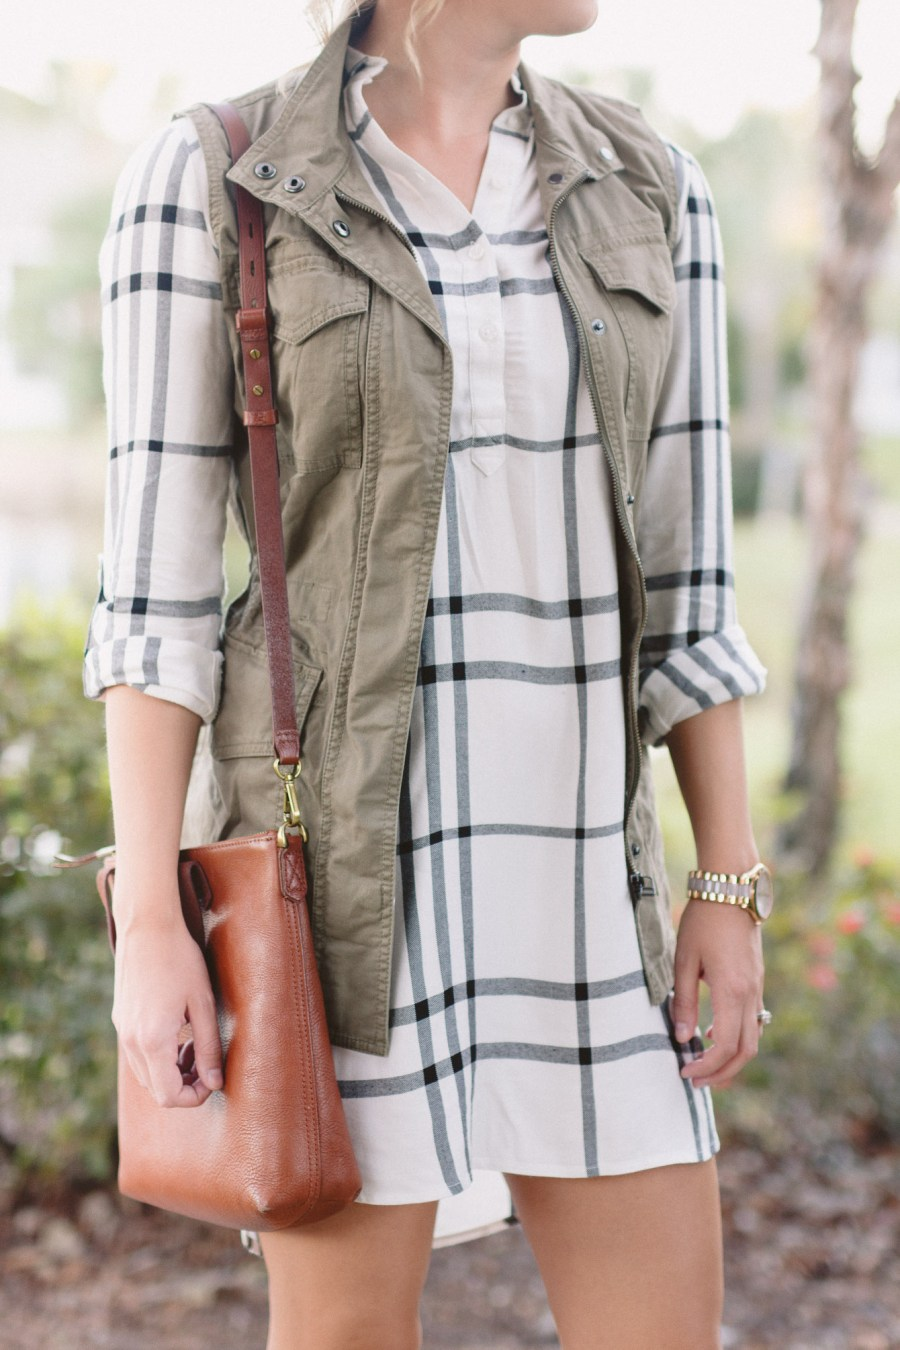 How To Style a Shirtdress for Fall